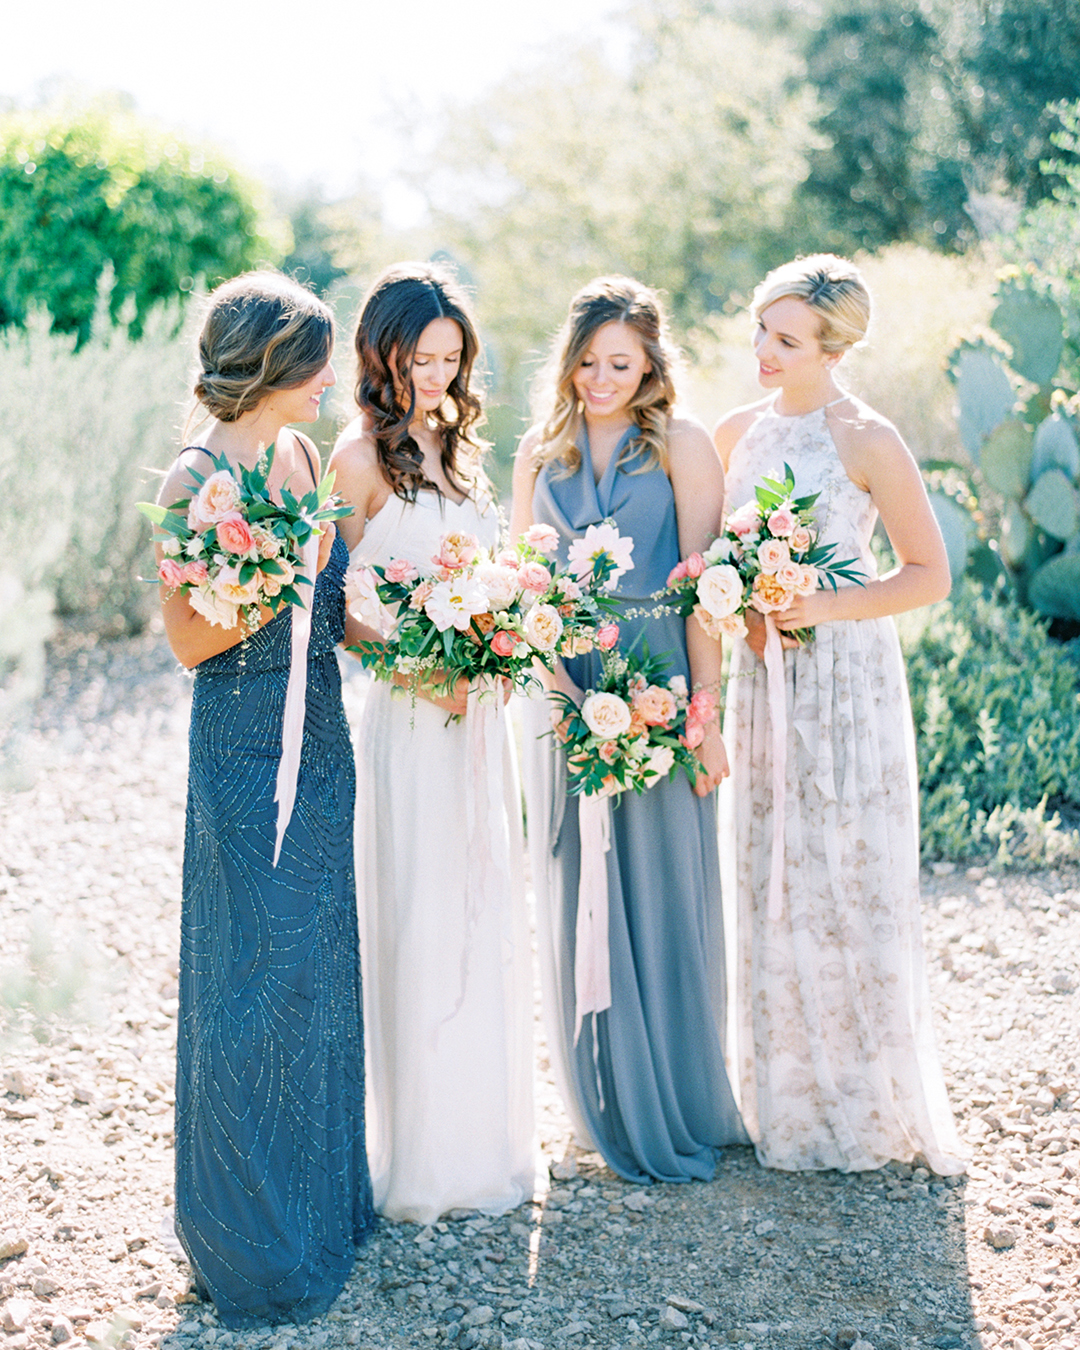 melissa_jill_contax645_fuji400_style_me_pretty_paradise_valley_hair_by_emily_hughes_bella_bridesmaids_photovisionprints.jpg